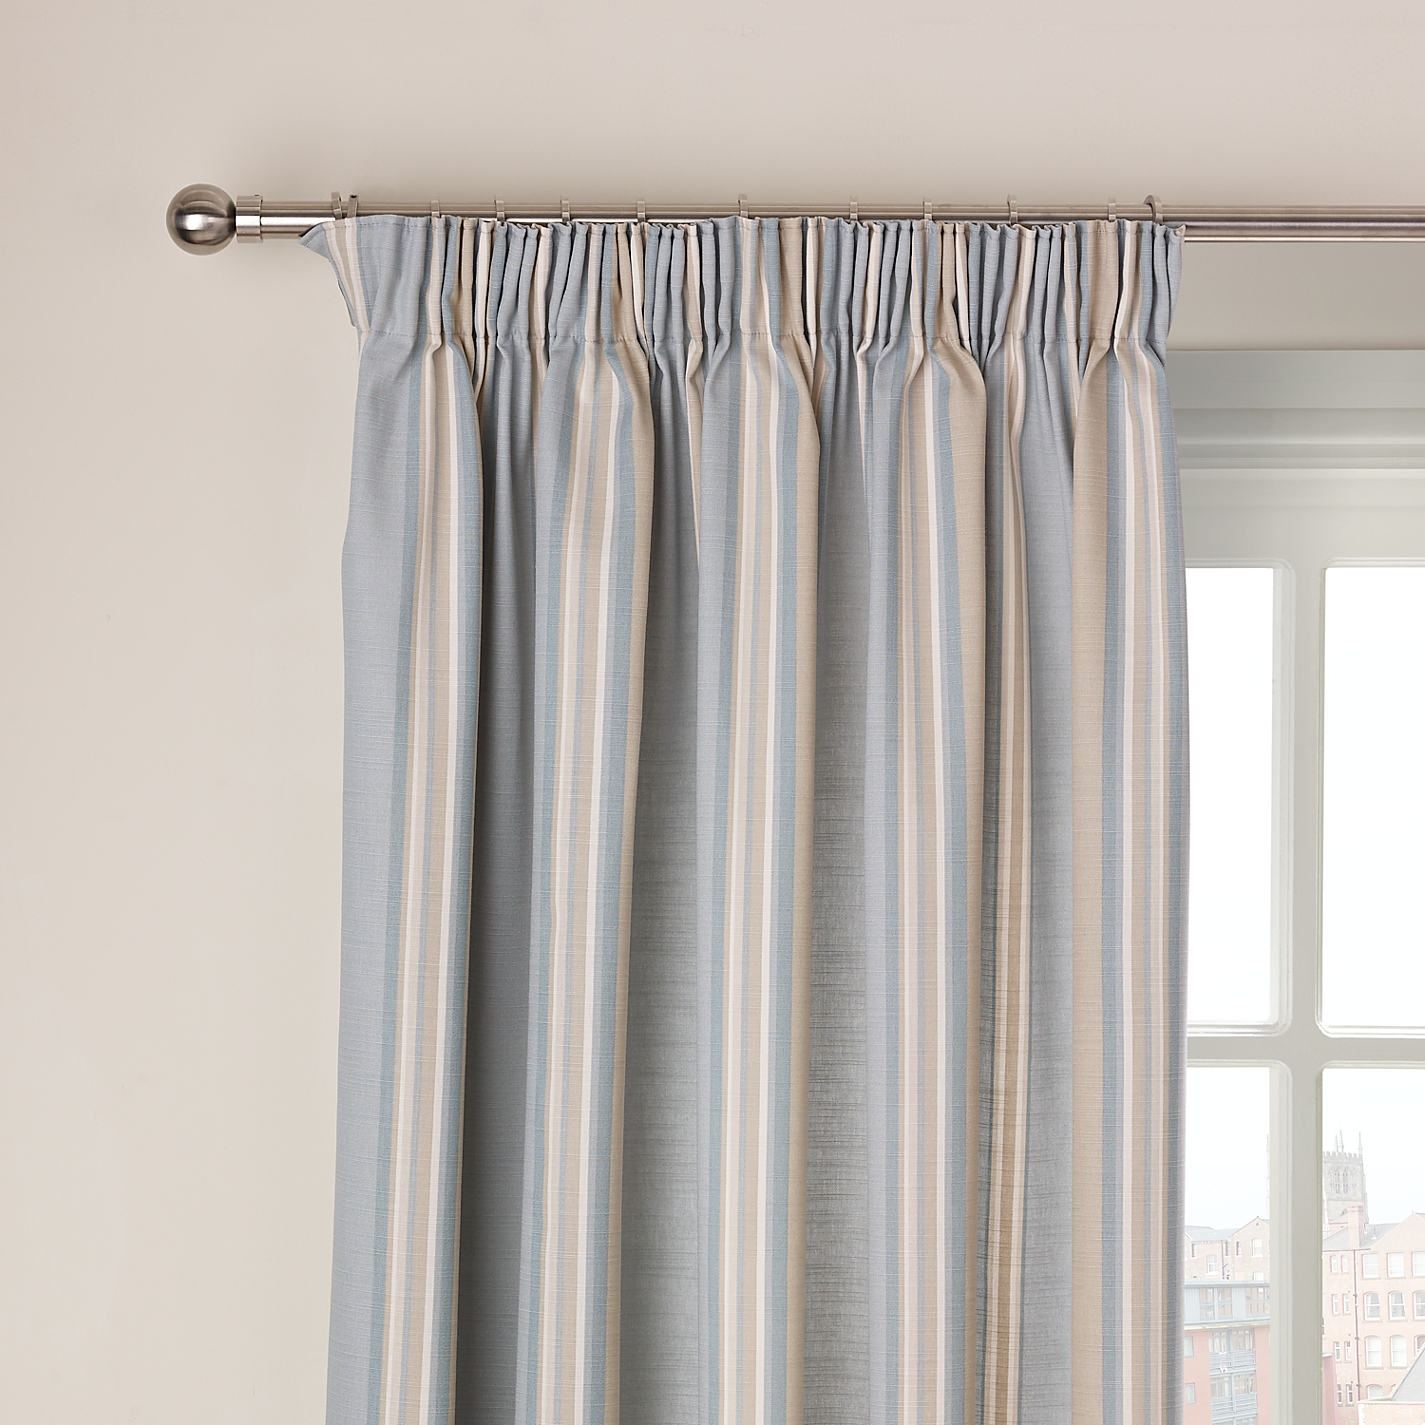 Pencil Pleat Curtains Buying Guides Egovjournal Home Within Pencil Pleat Curtains (View 14 of 15)